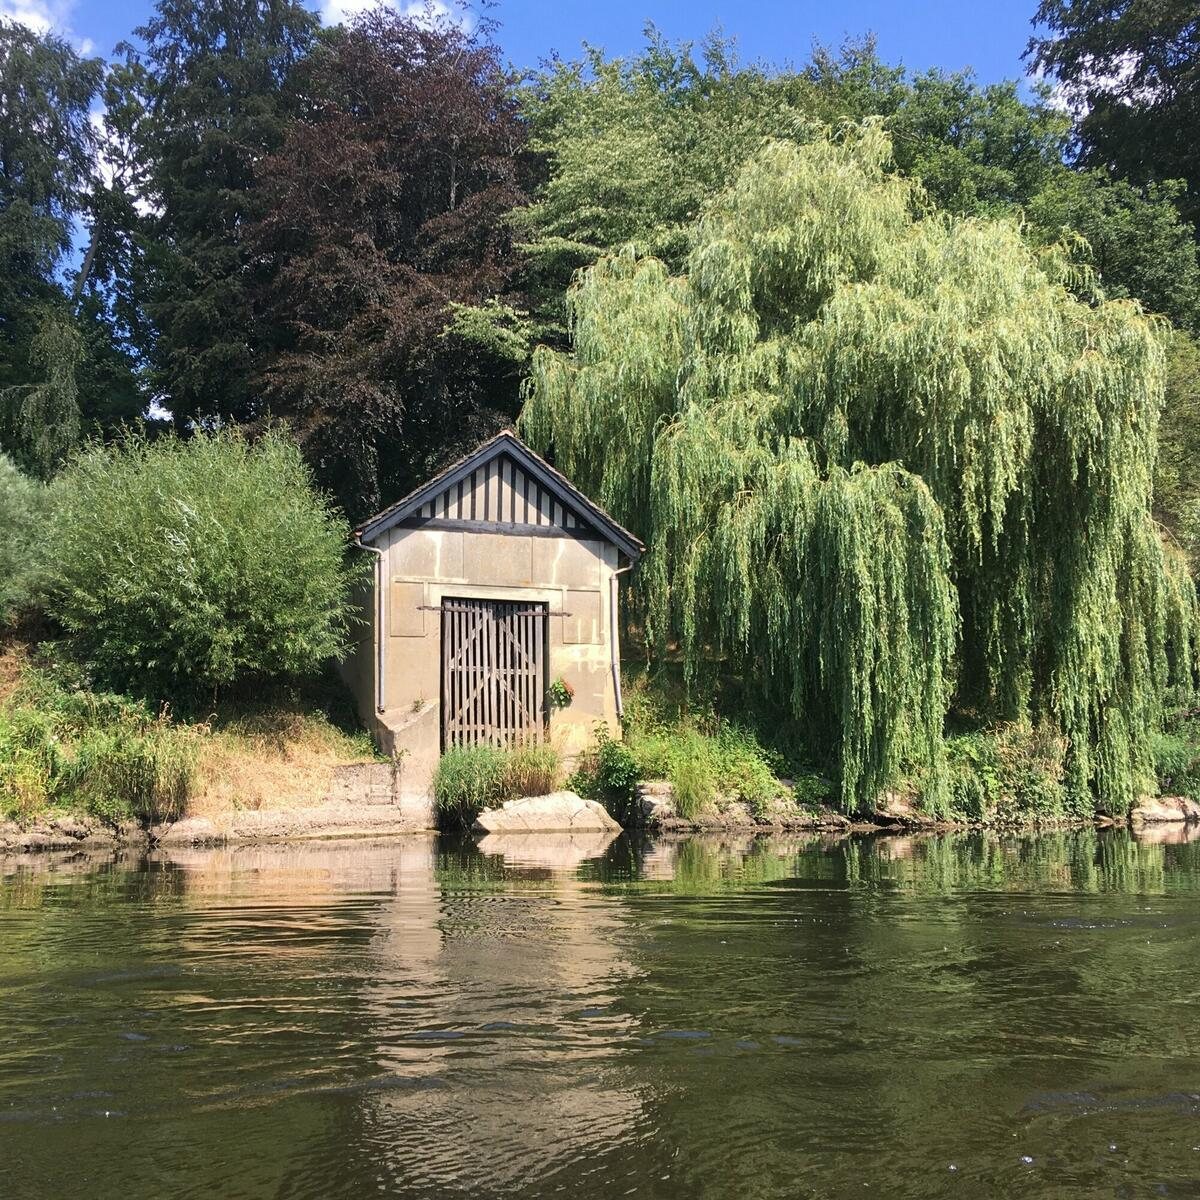 The 1920s boathouse